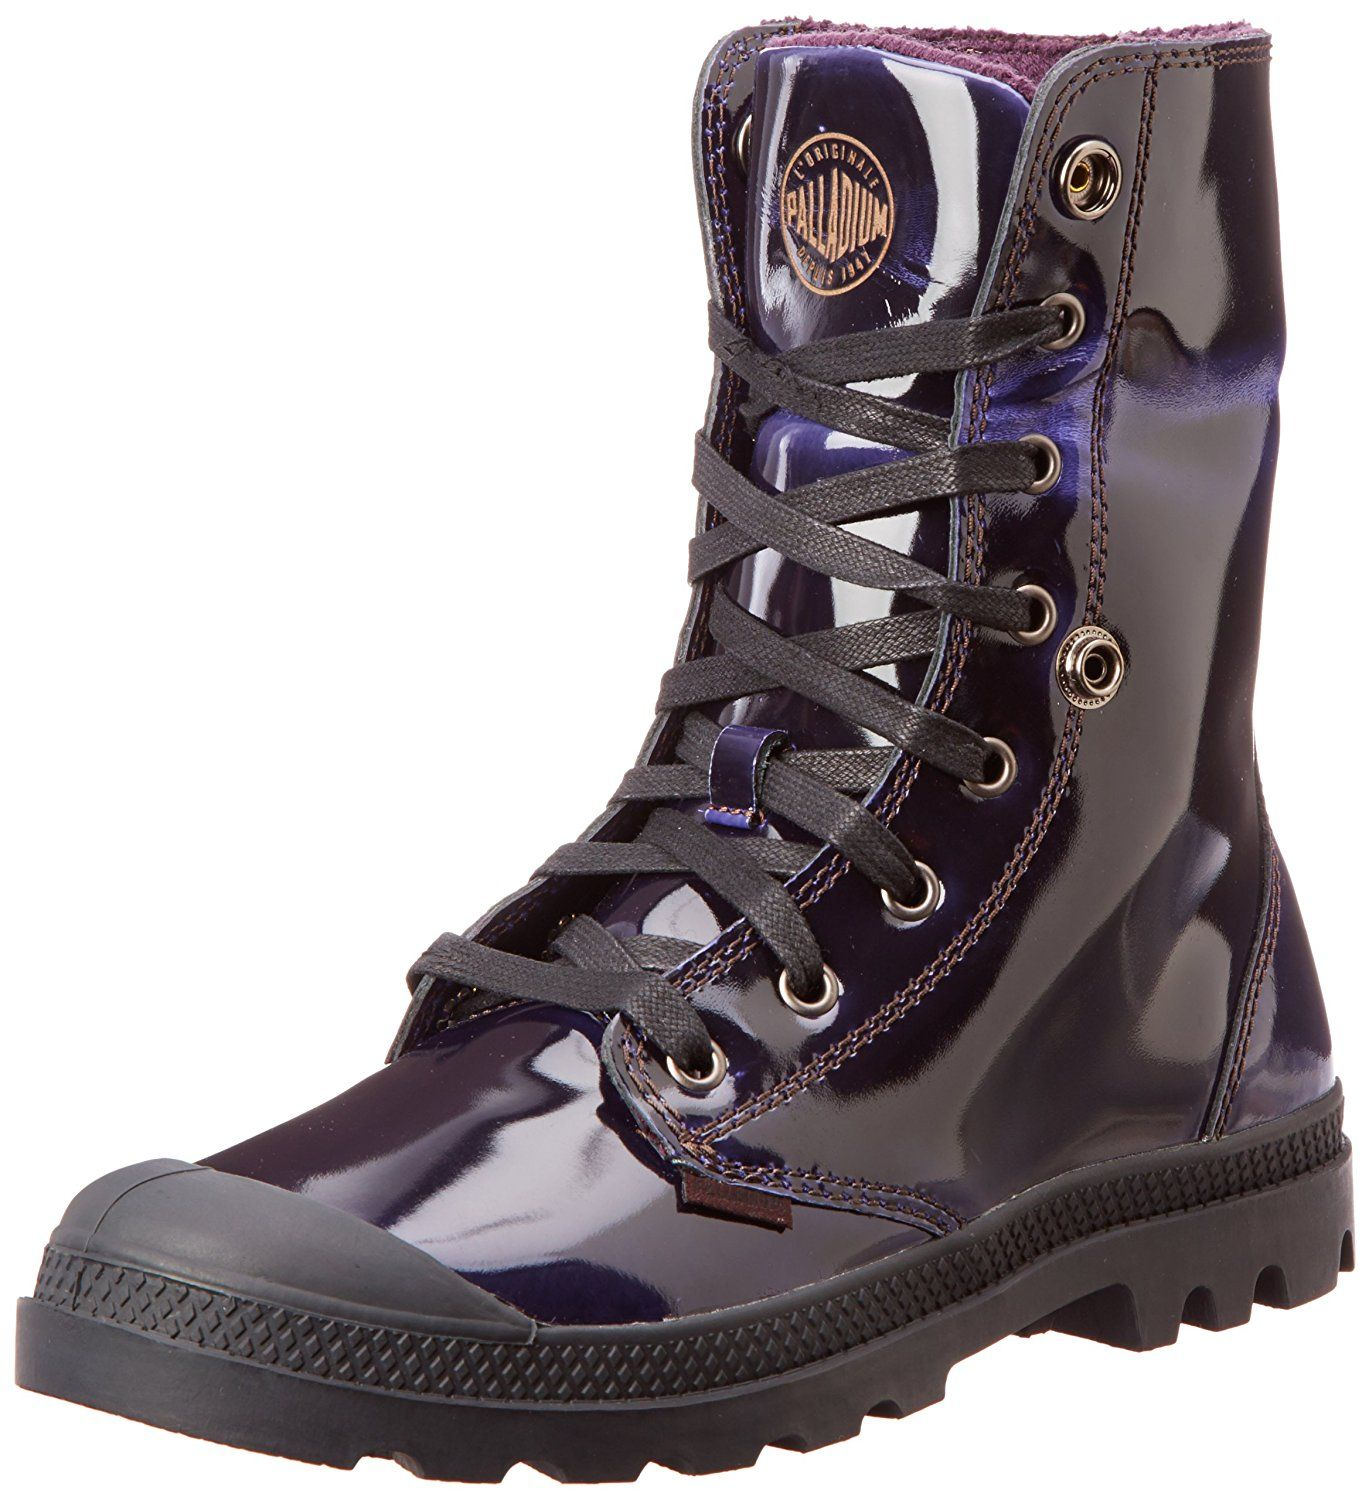 Palladium Baggy Leather Knit Boots Midnight Purple Women S Shoes The Baggy Leather Knit Boot By Palladium In A Dark Pur Palladium Boots Boots Palladium Shoes